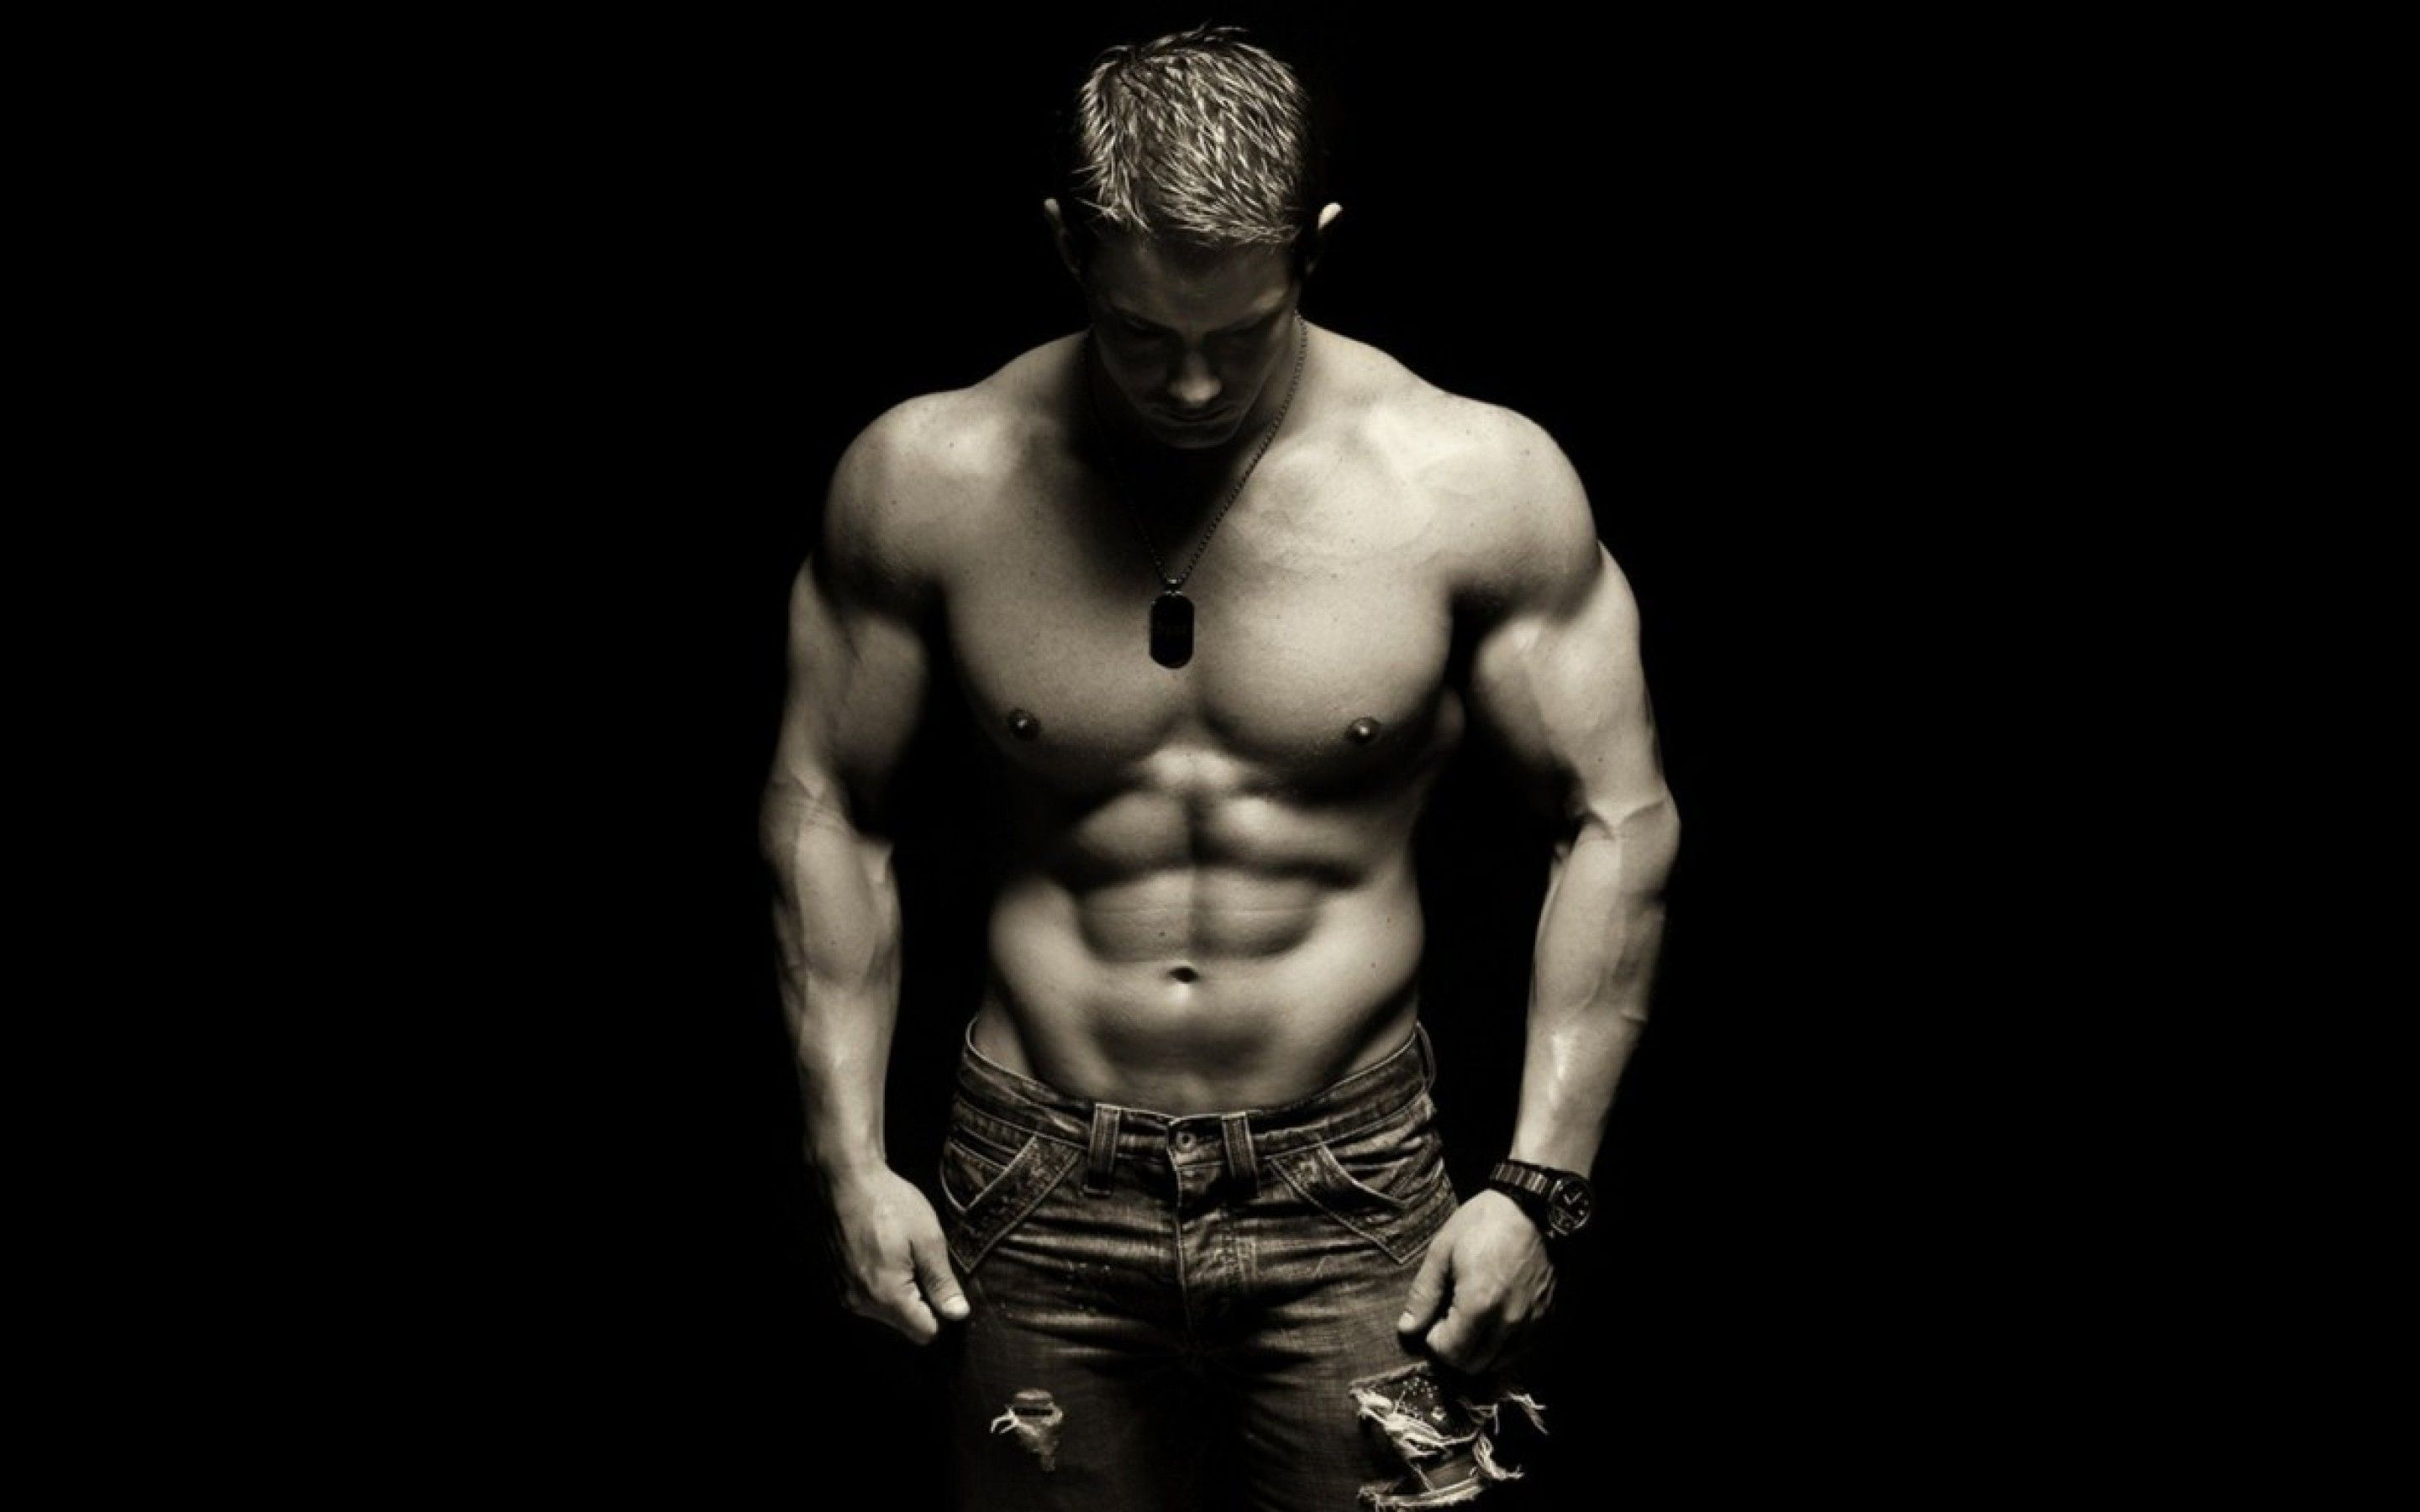 Body Builder HD Wallpaper